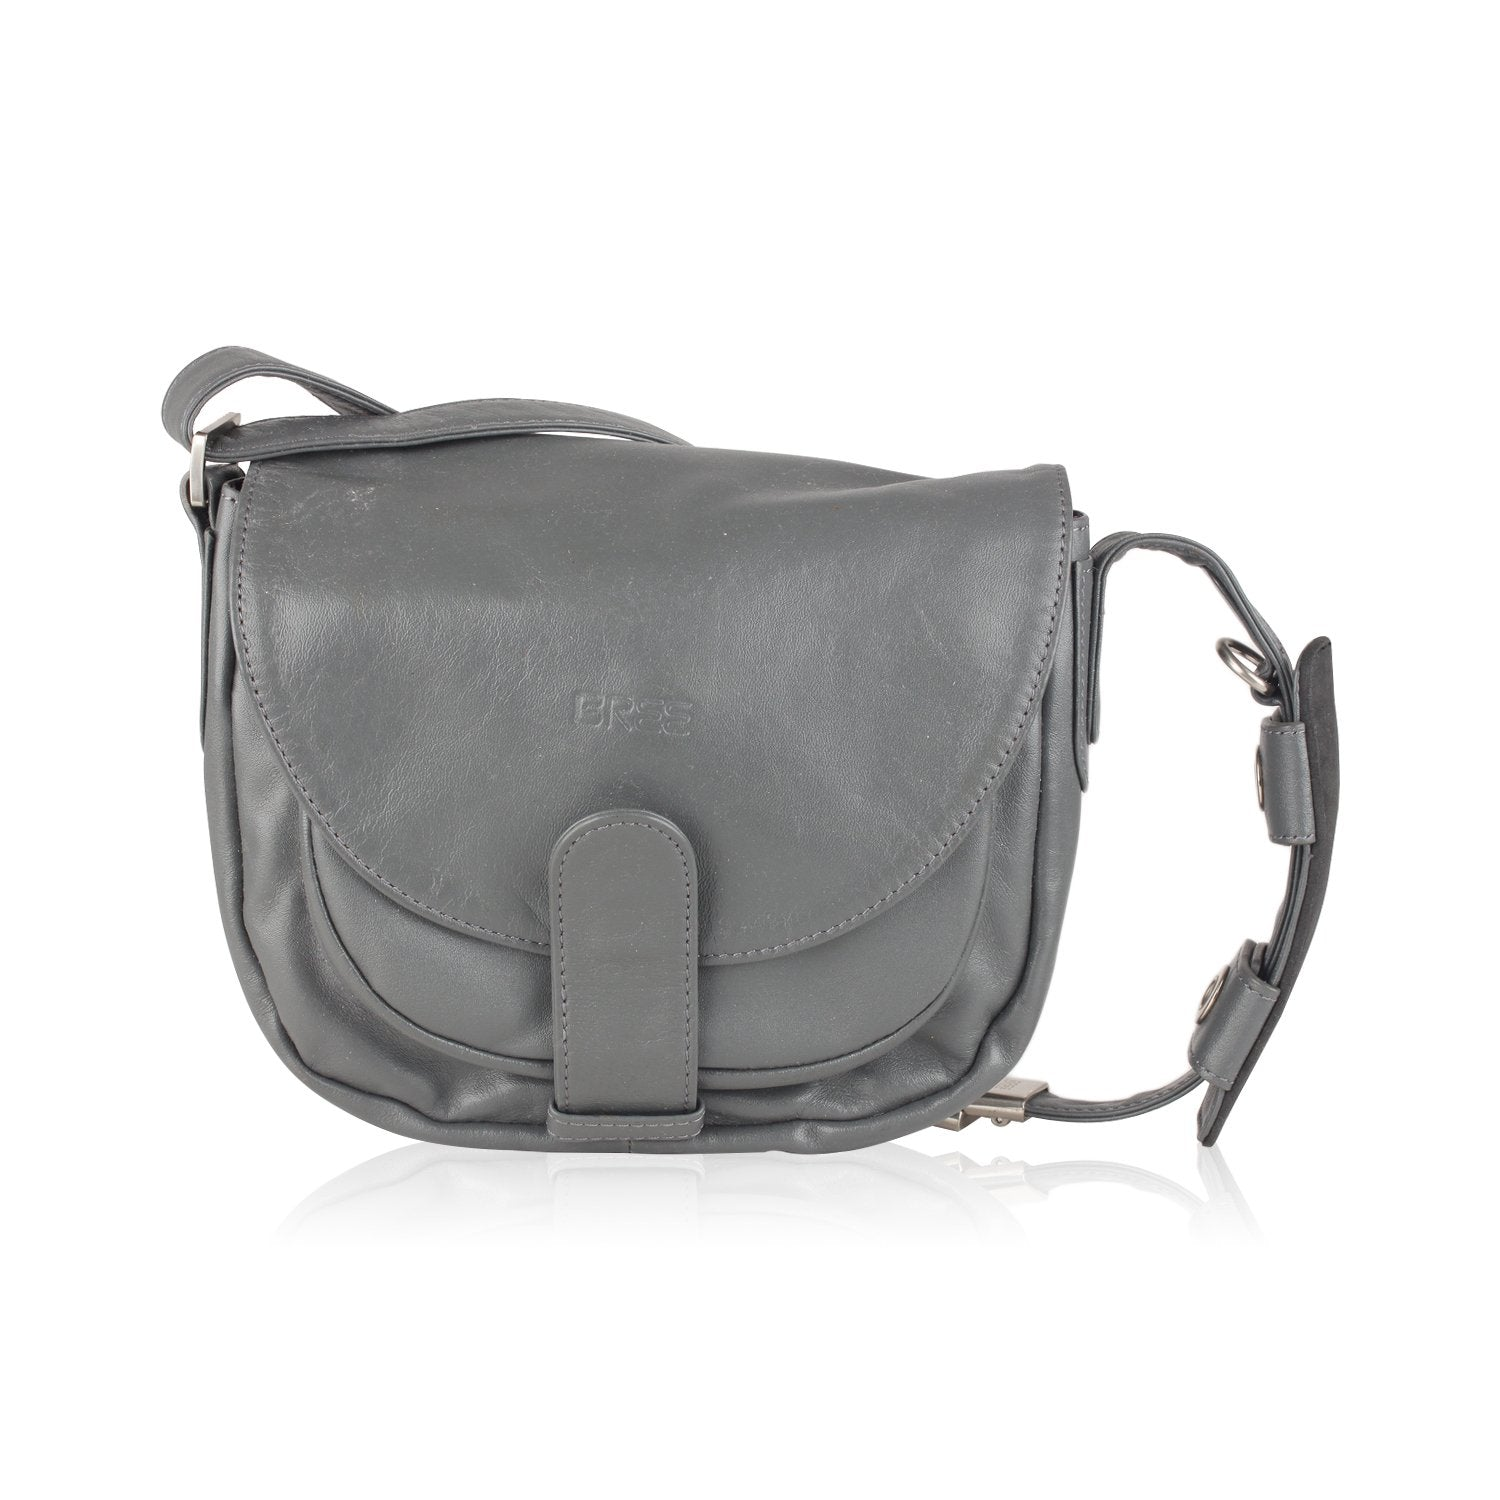 f9bb109f0484 Enjoy Bree Small Messenger Crossbody Bag at OPHERTYCIOCCI – OPHERTY ...